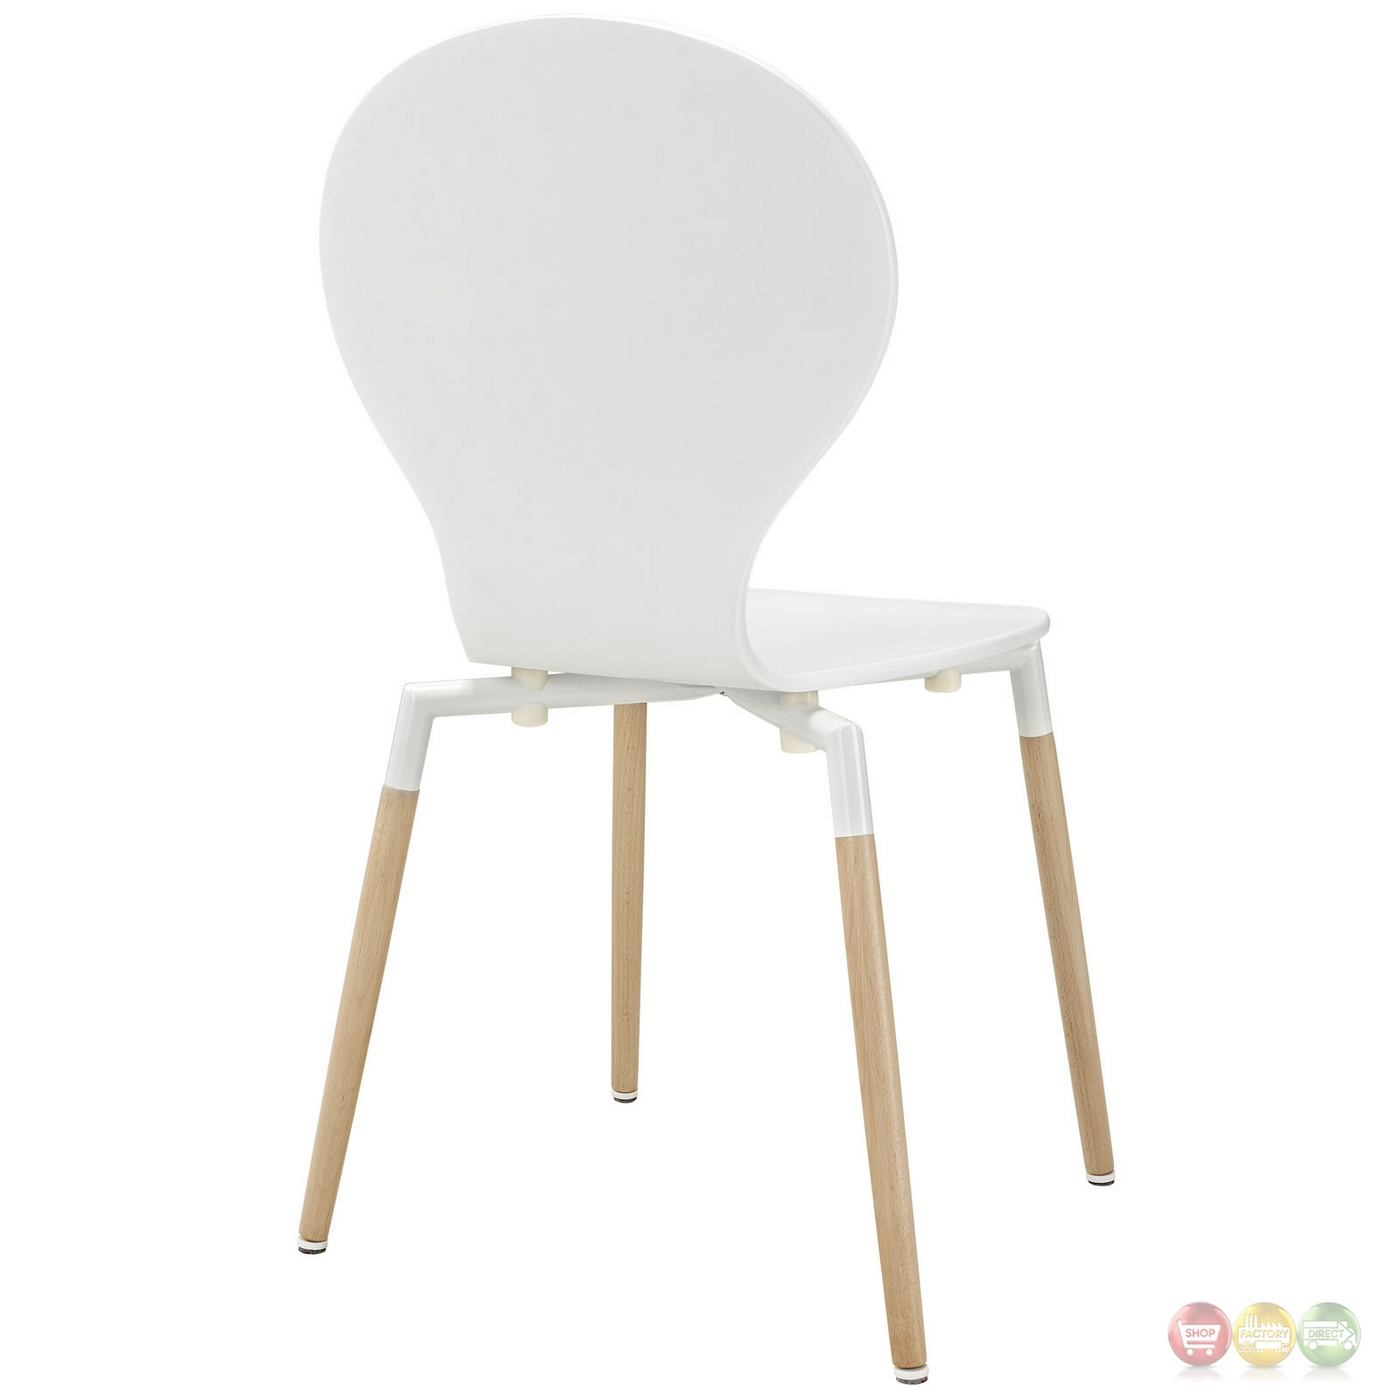 Path stylish contemporary wood dining side chair white for Contemporary white dining chairs